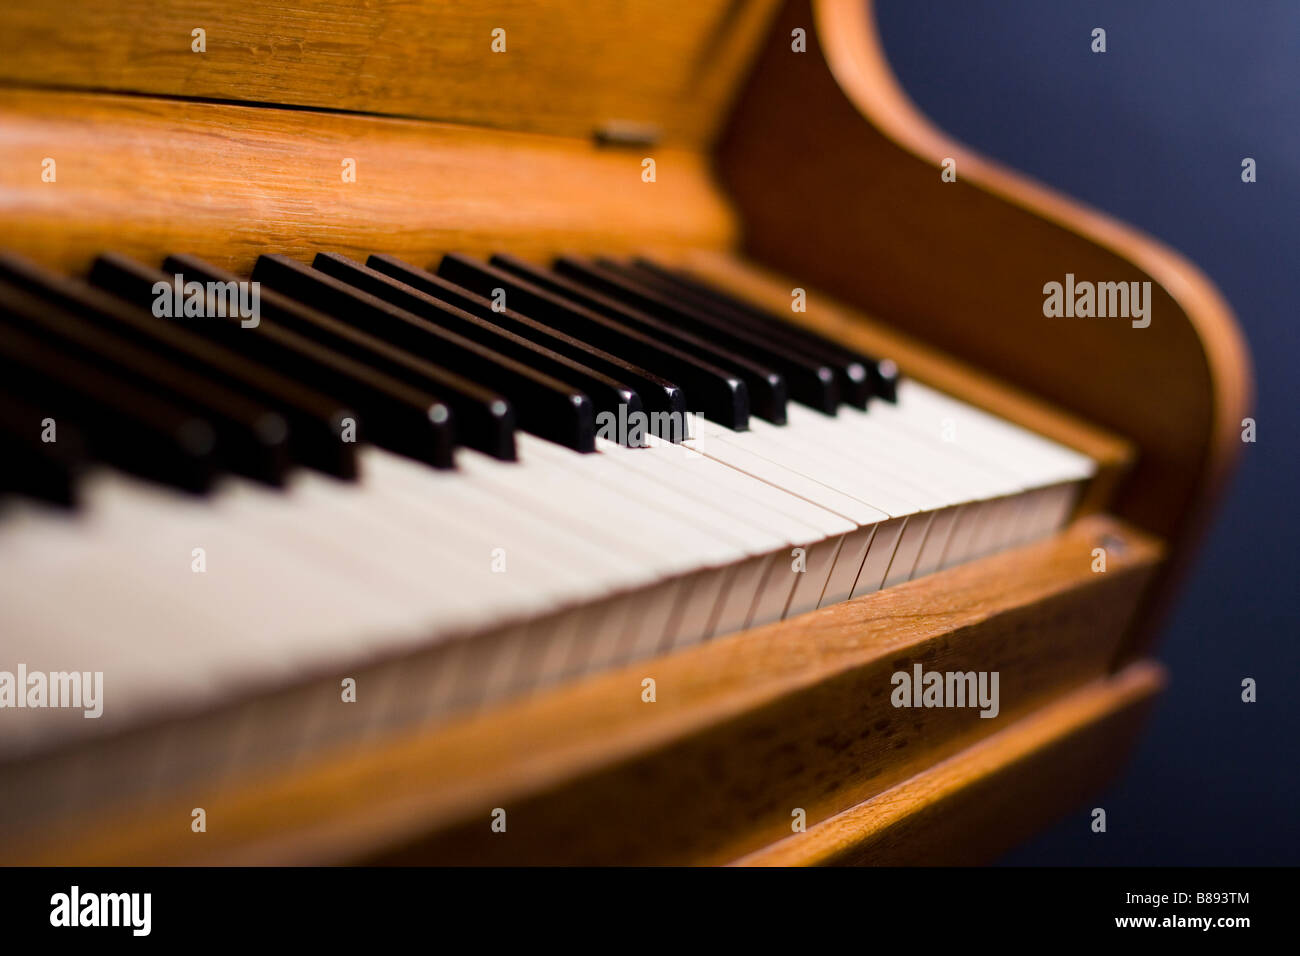 Angle shot of piano keyboard with shallow depth of field - Stock Image